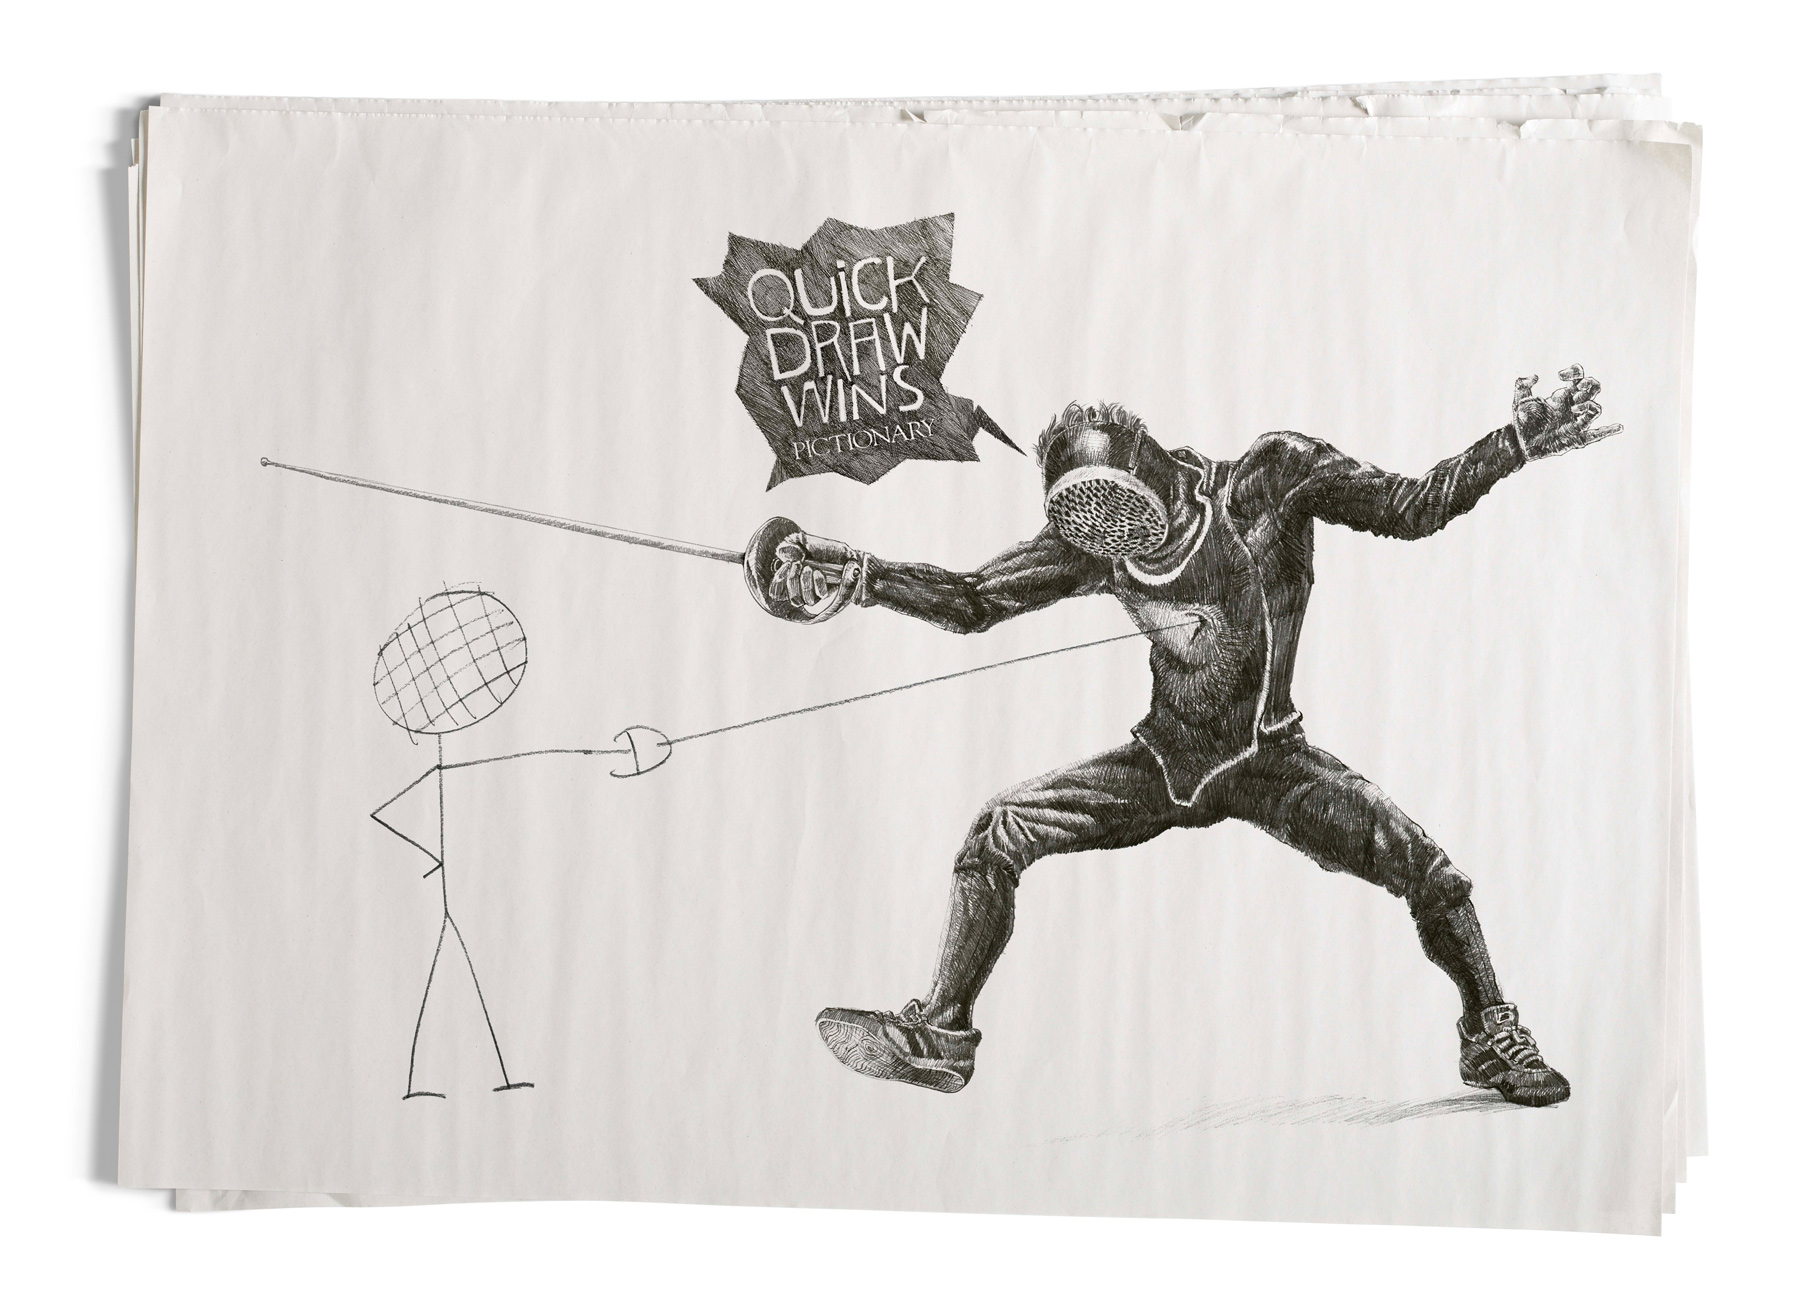 Drawn advertisement pictionary Ad of Ads Fencing Fencing